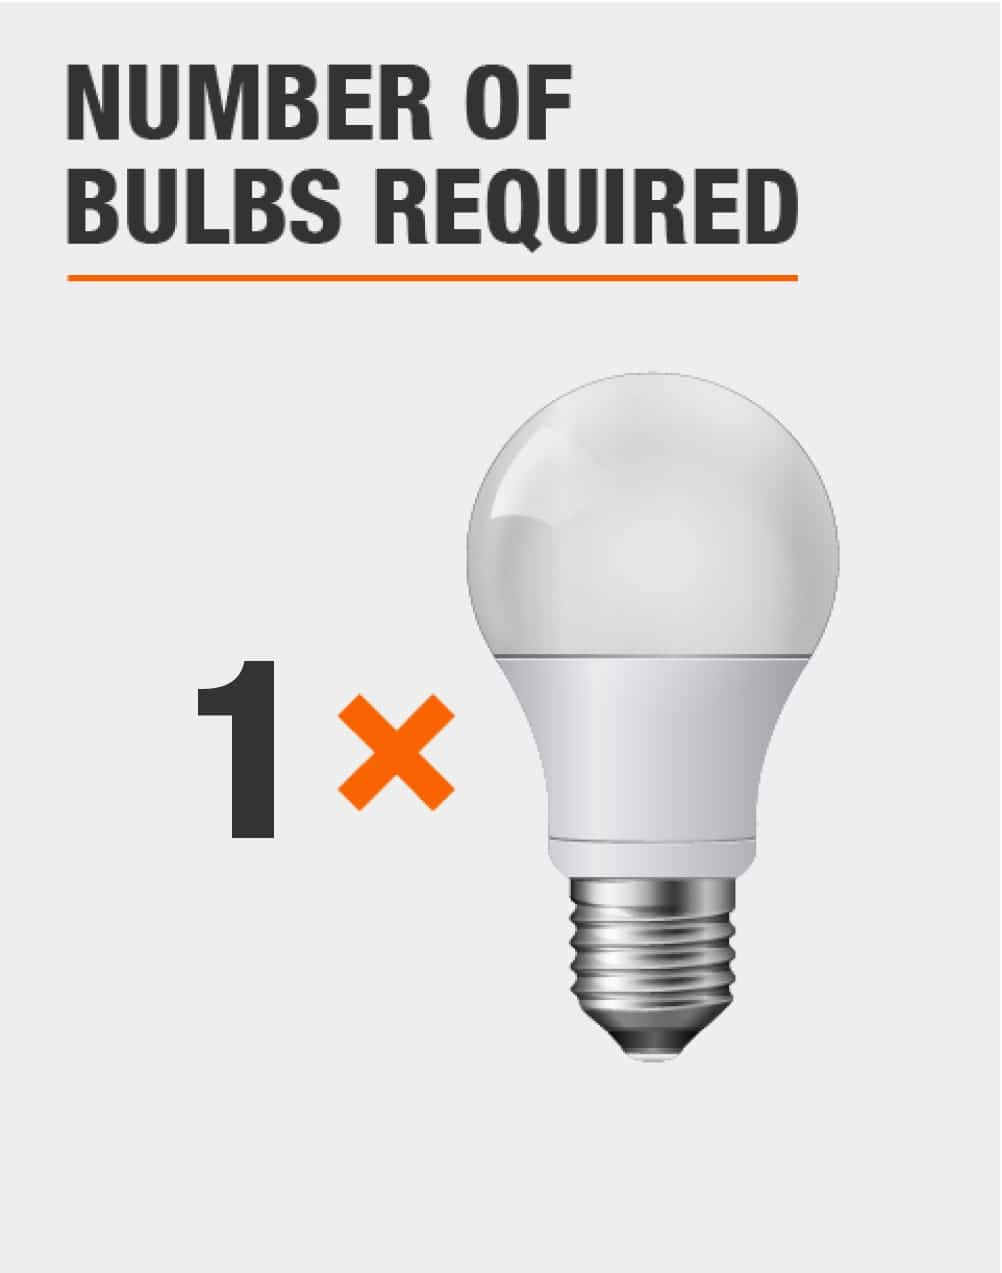 number of bulbs required is 1